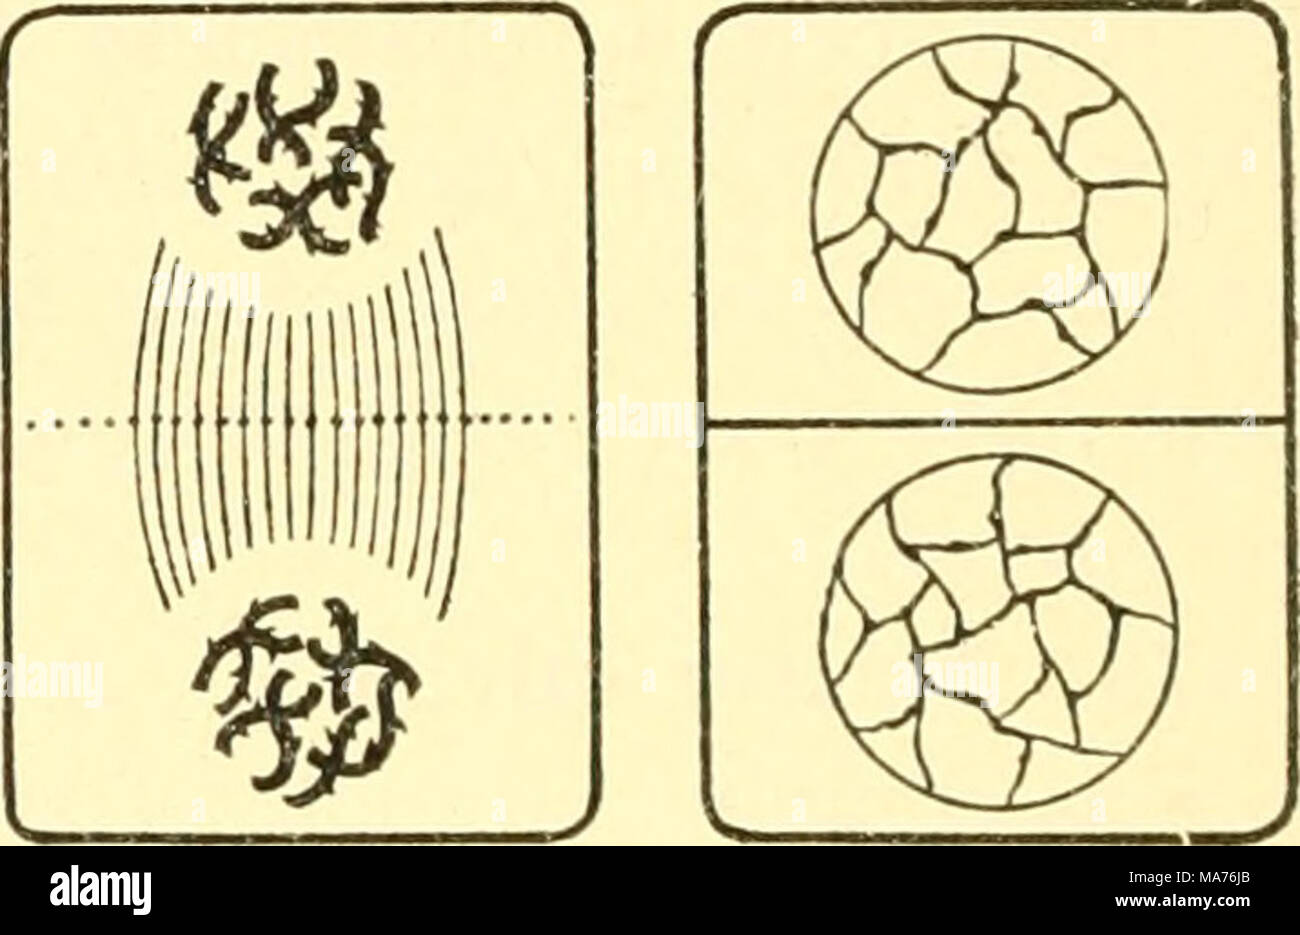 Cell division diagram stock photos cell division diagram stock elementary biology an introduction to the science of life 5 6 7 fig pooptronica Images